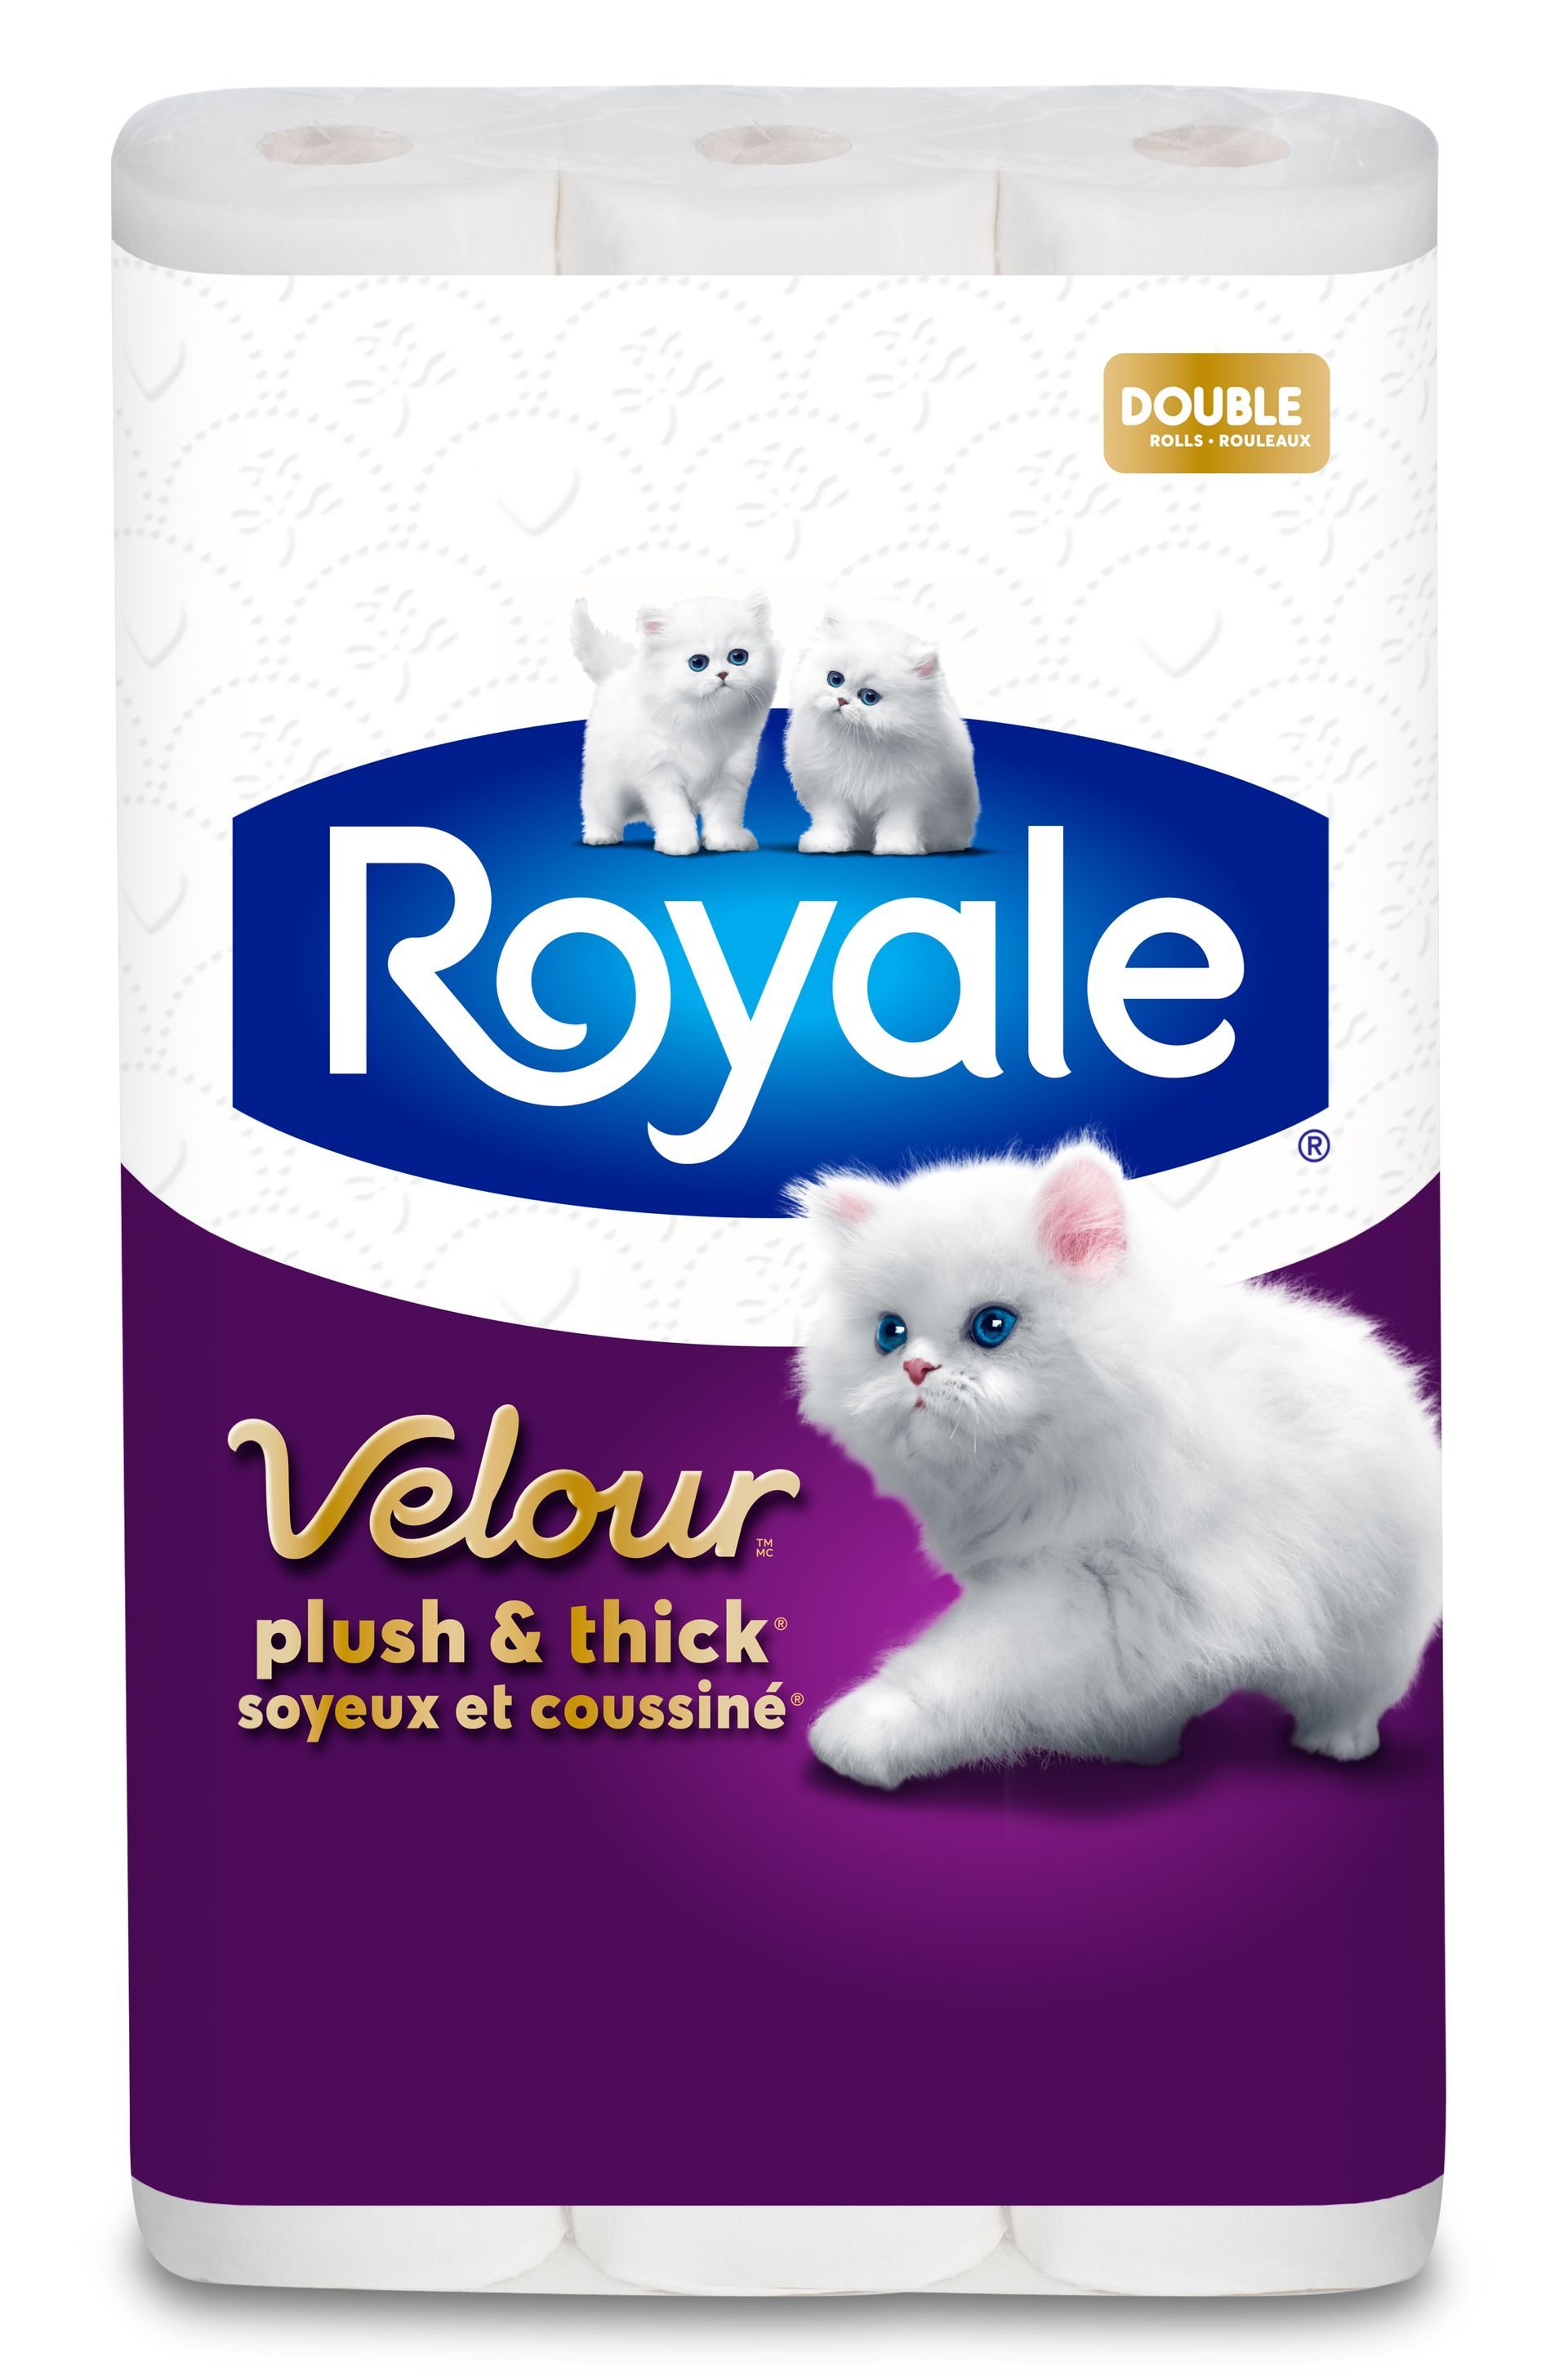 ROYALE® Velour™ 雙倍卷裝 pack